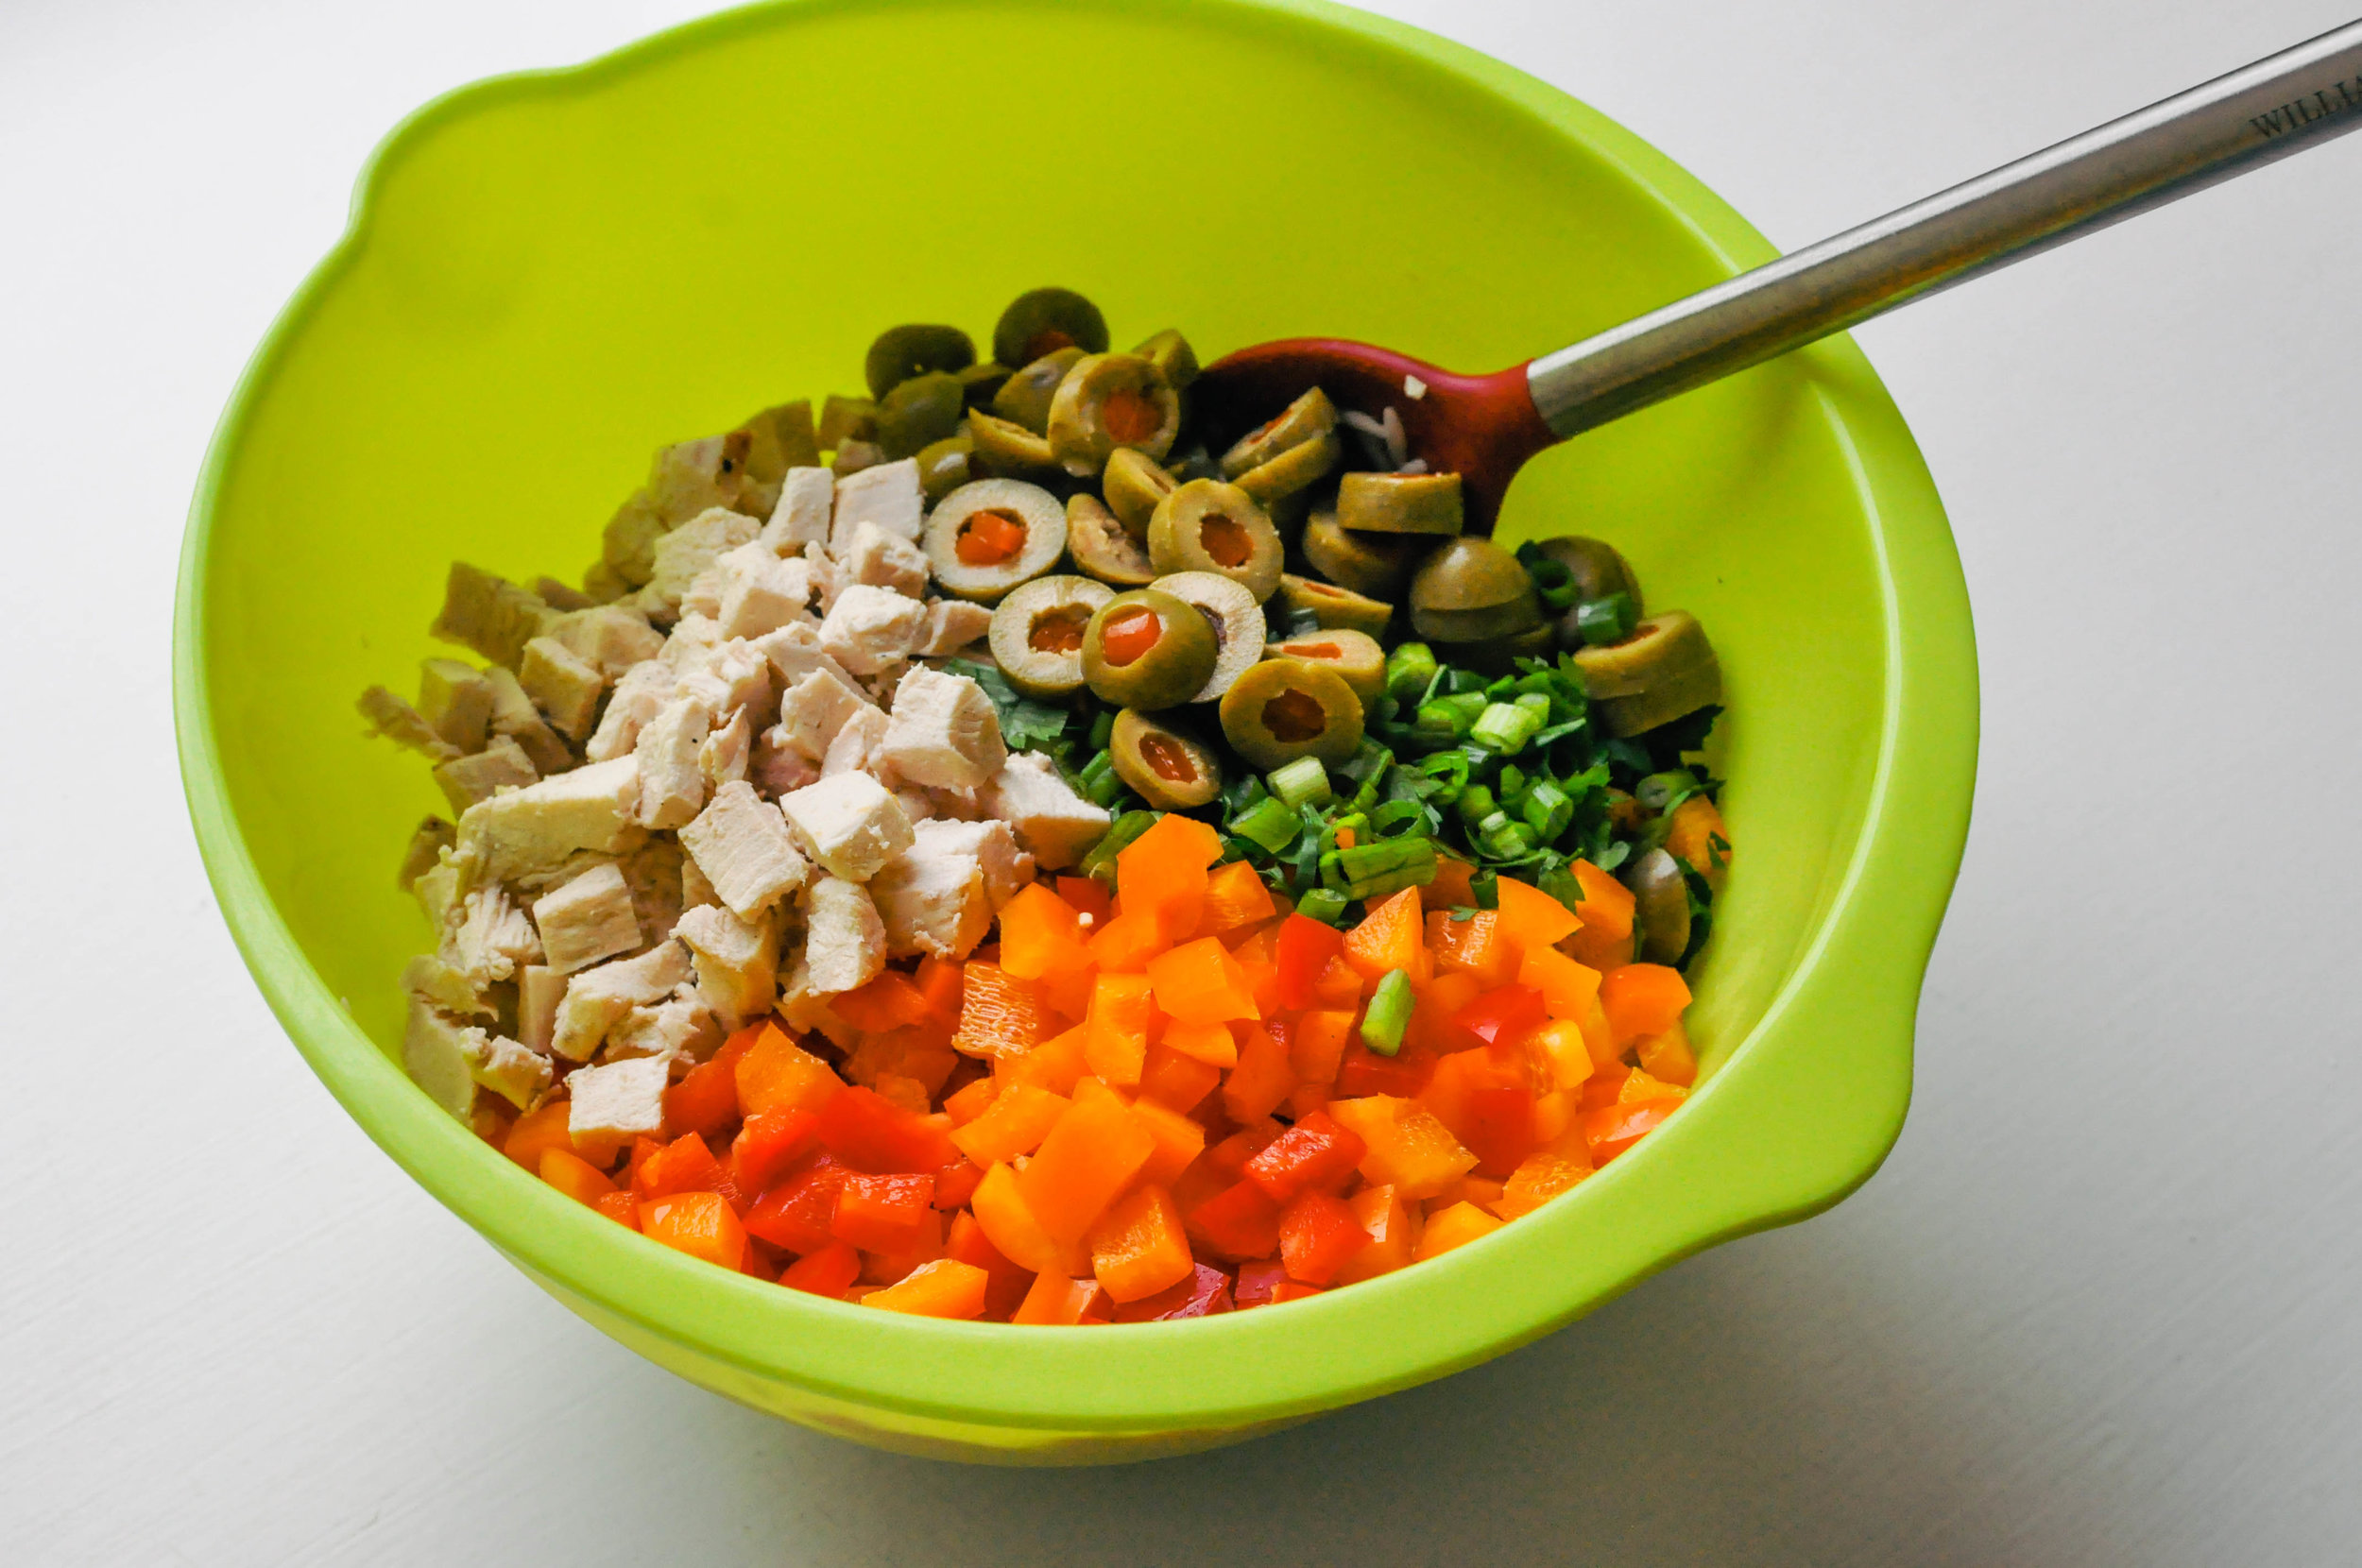 Orzo Salad with Chicken, Bell Peppers, and a Wholegrain Mustard Dressing | This Healthy Table